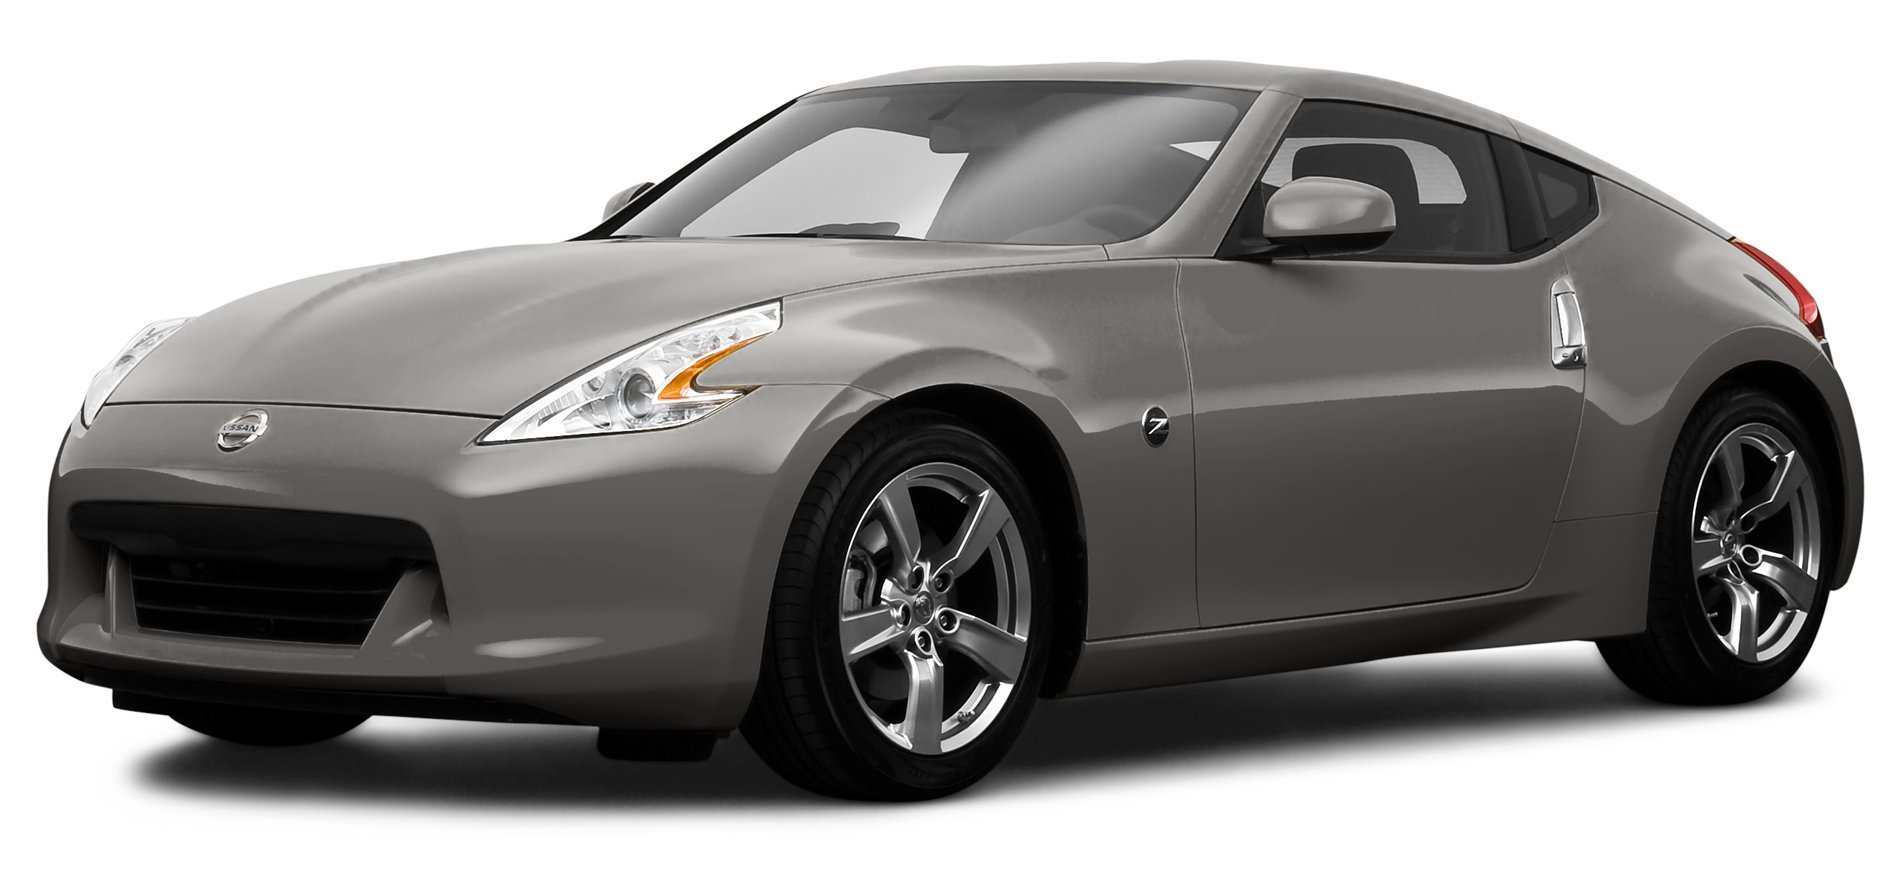 ... 2009 Nissan 370Z, 2 Door Coupe Automatic Transmission ...